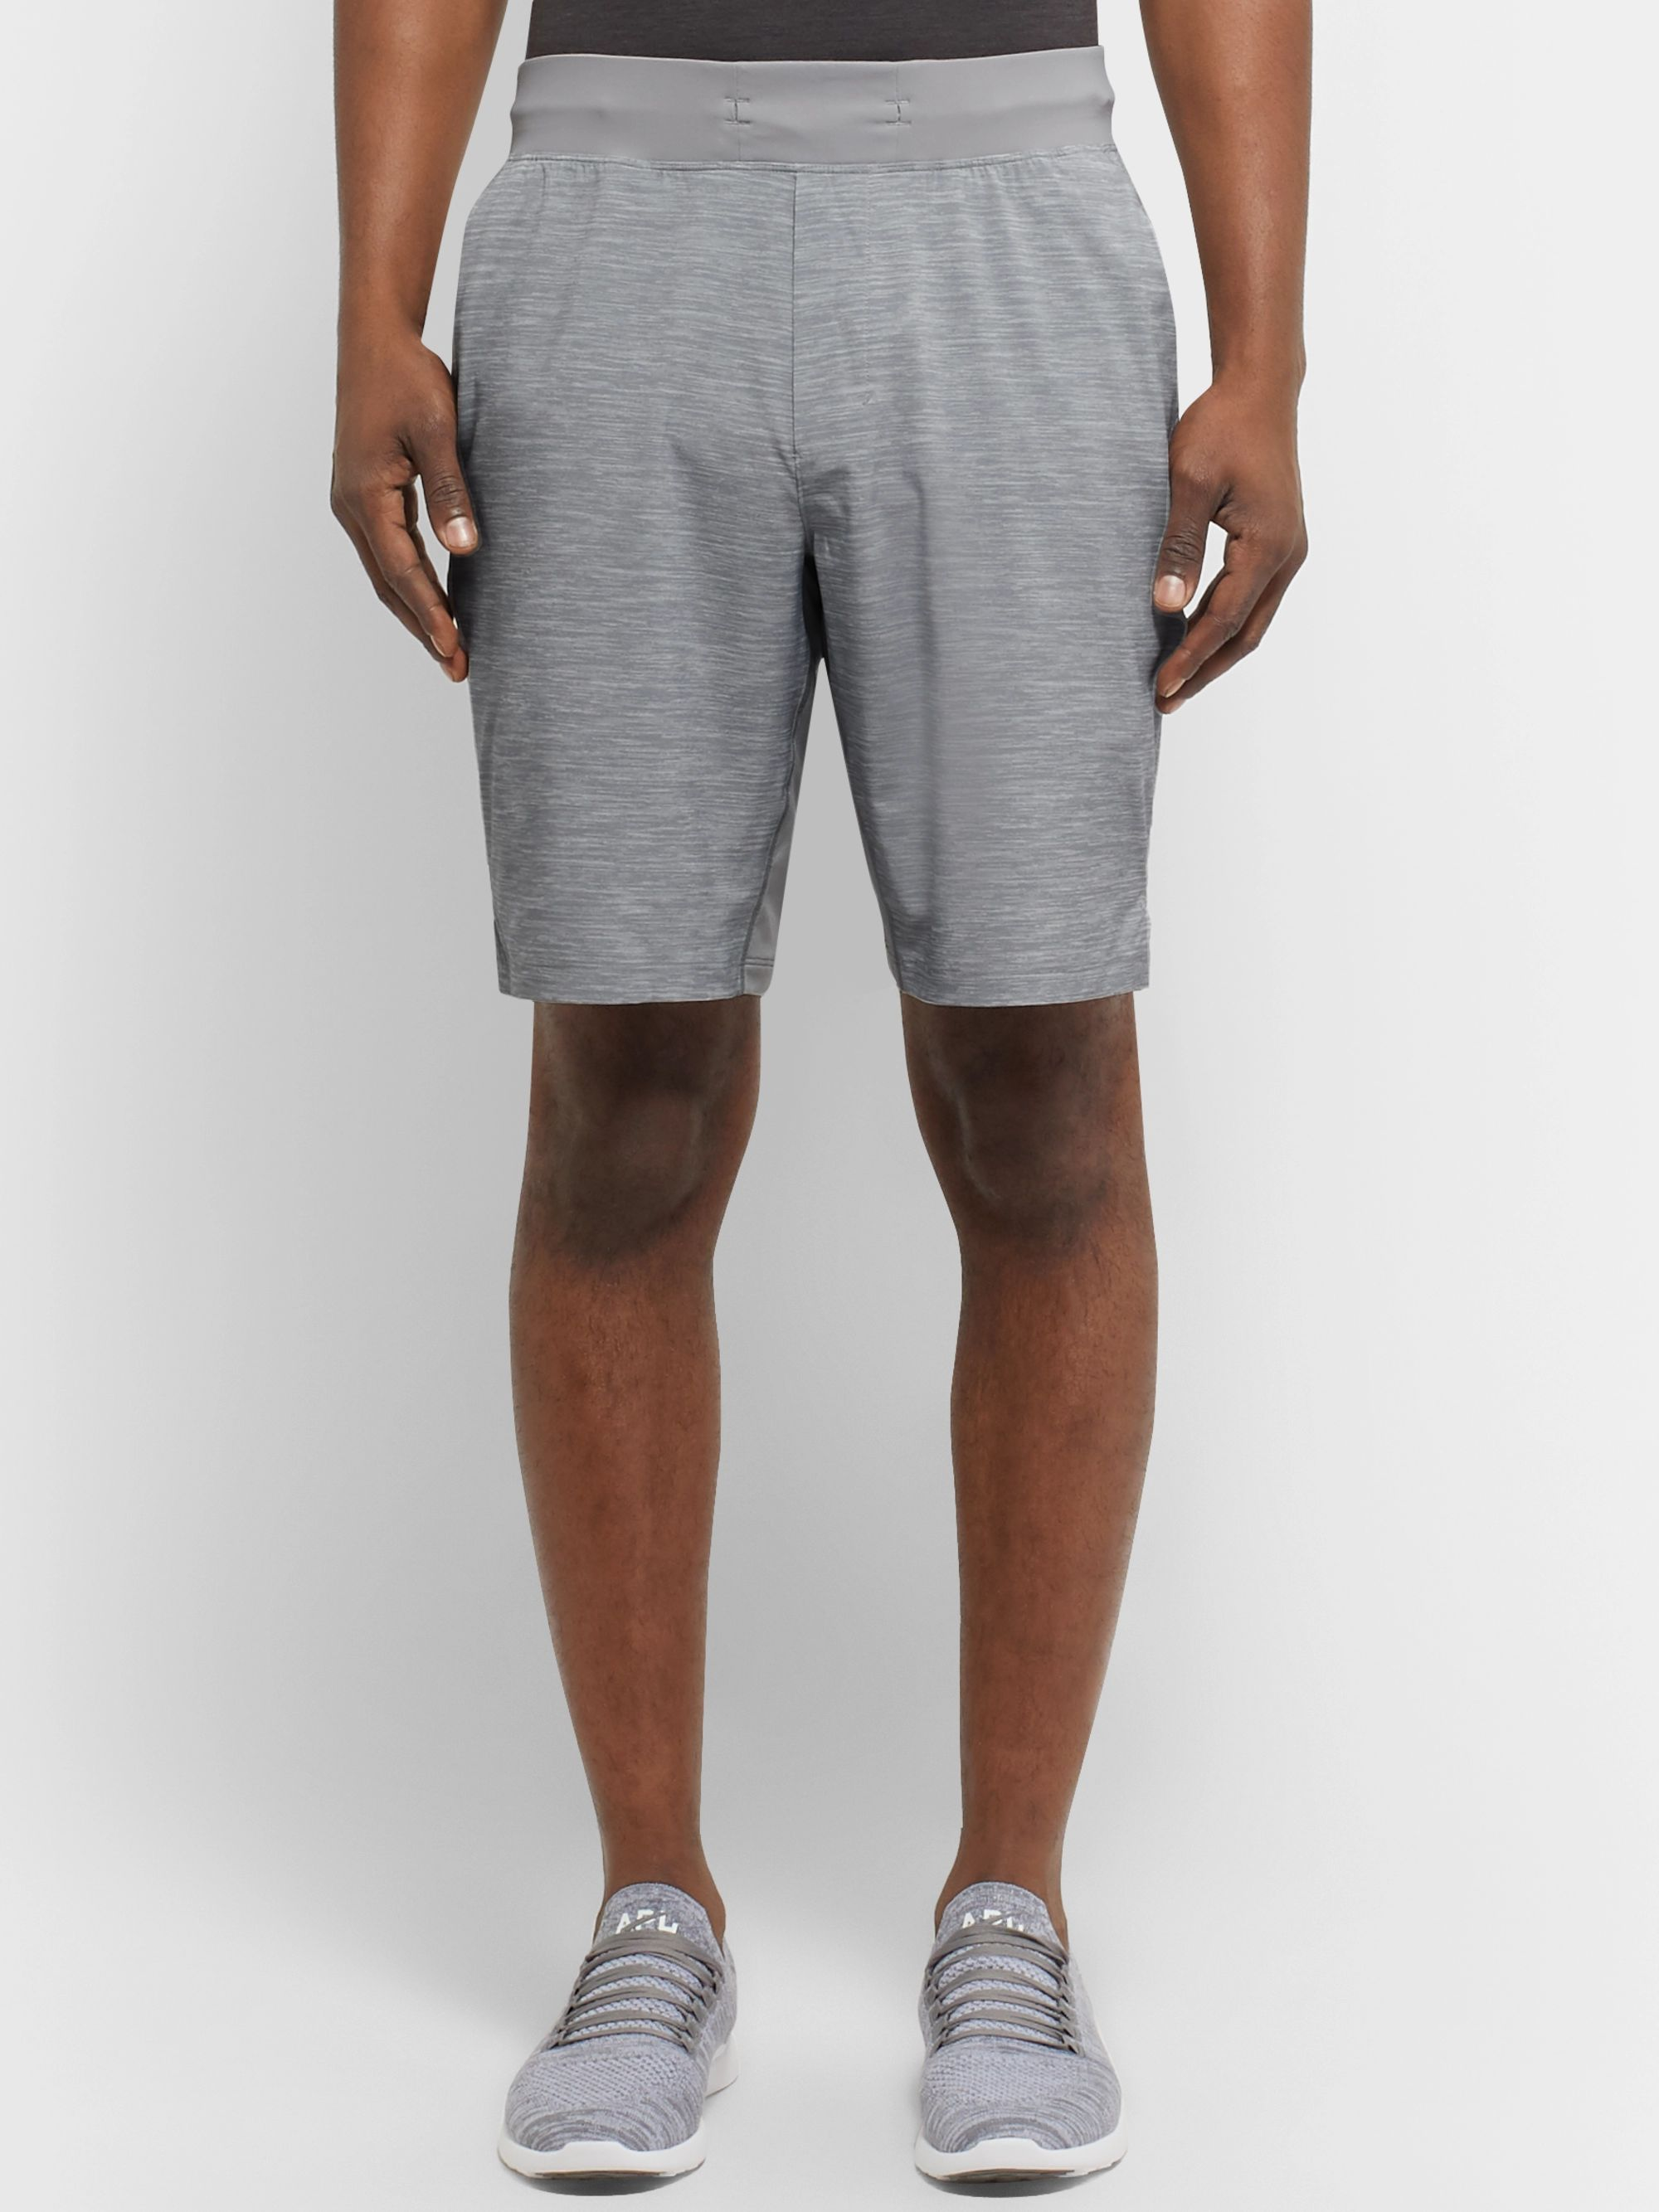 Lululemon T.H.E. Short Mesh-Panelled Space-Dyed Swift Shorts